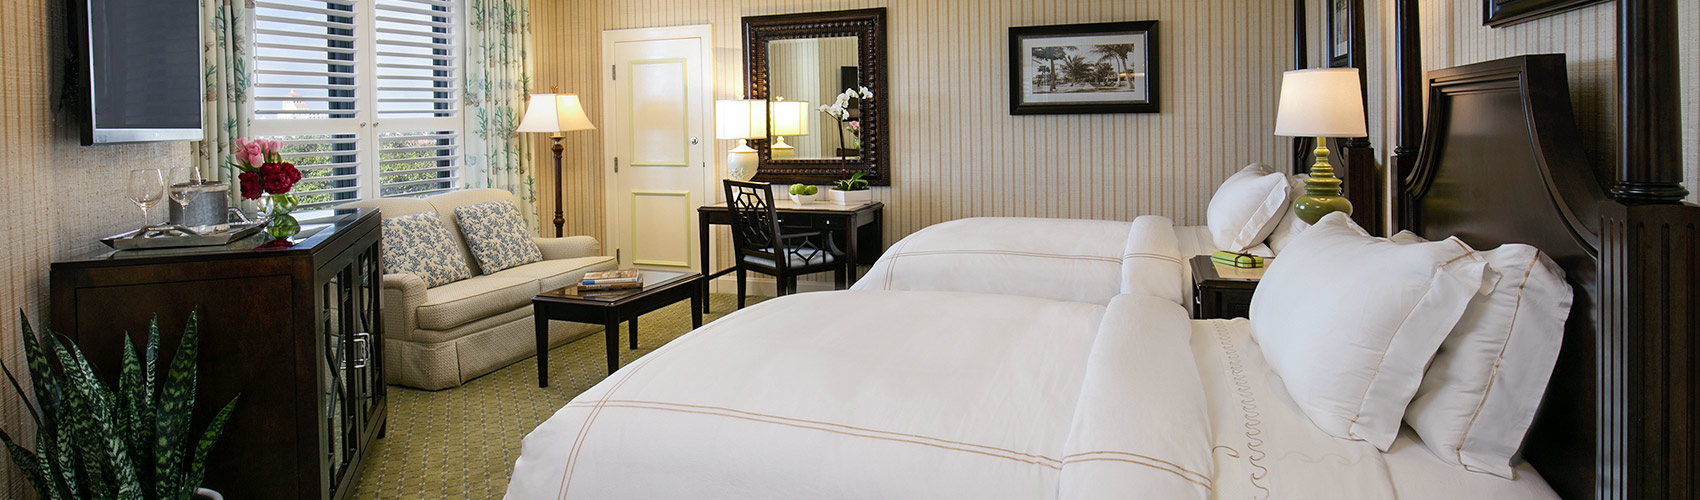 Two Premium guest room beds